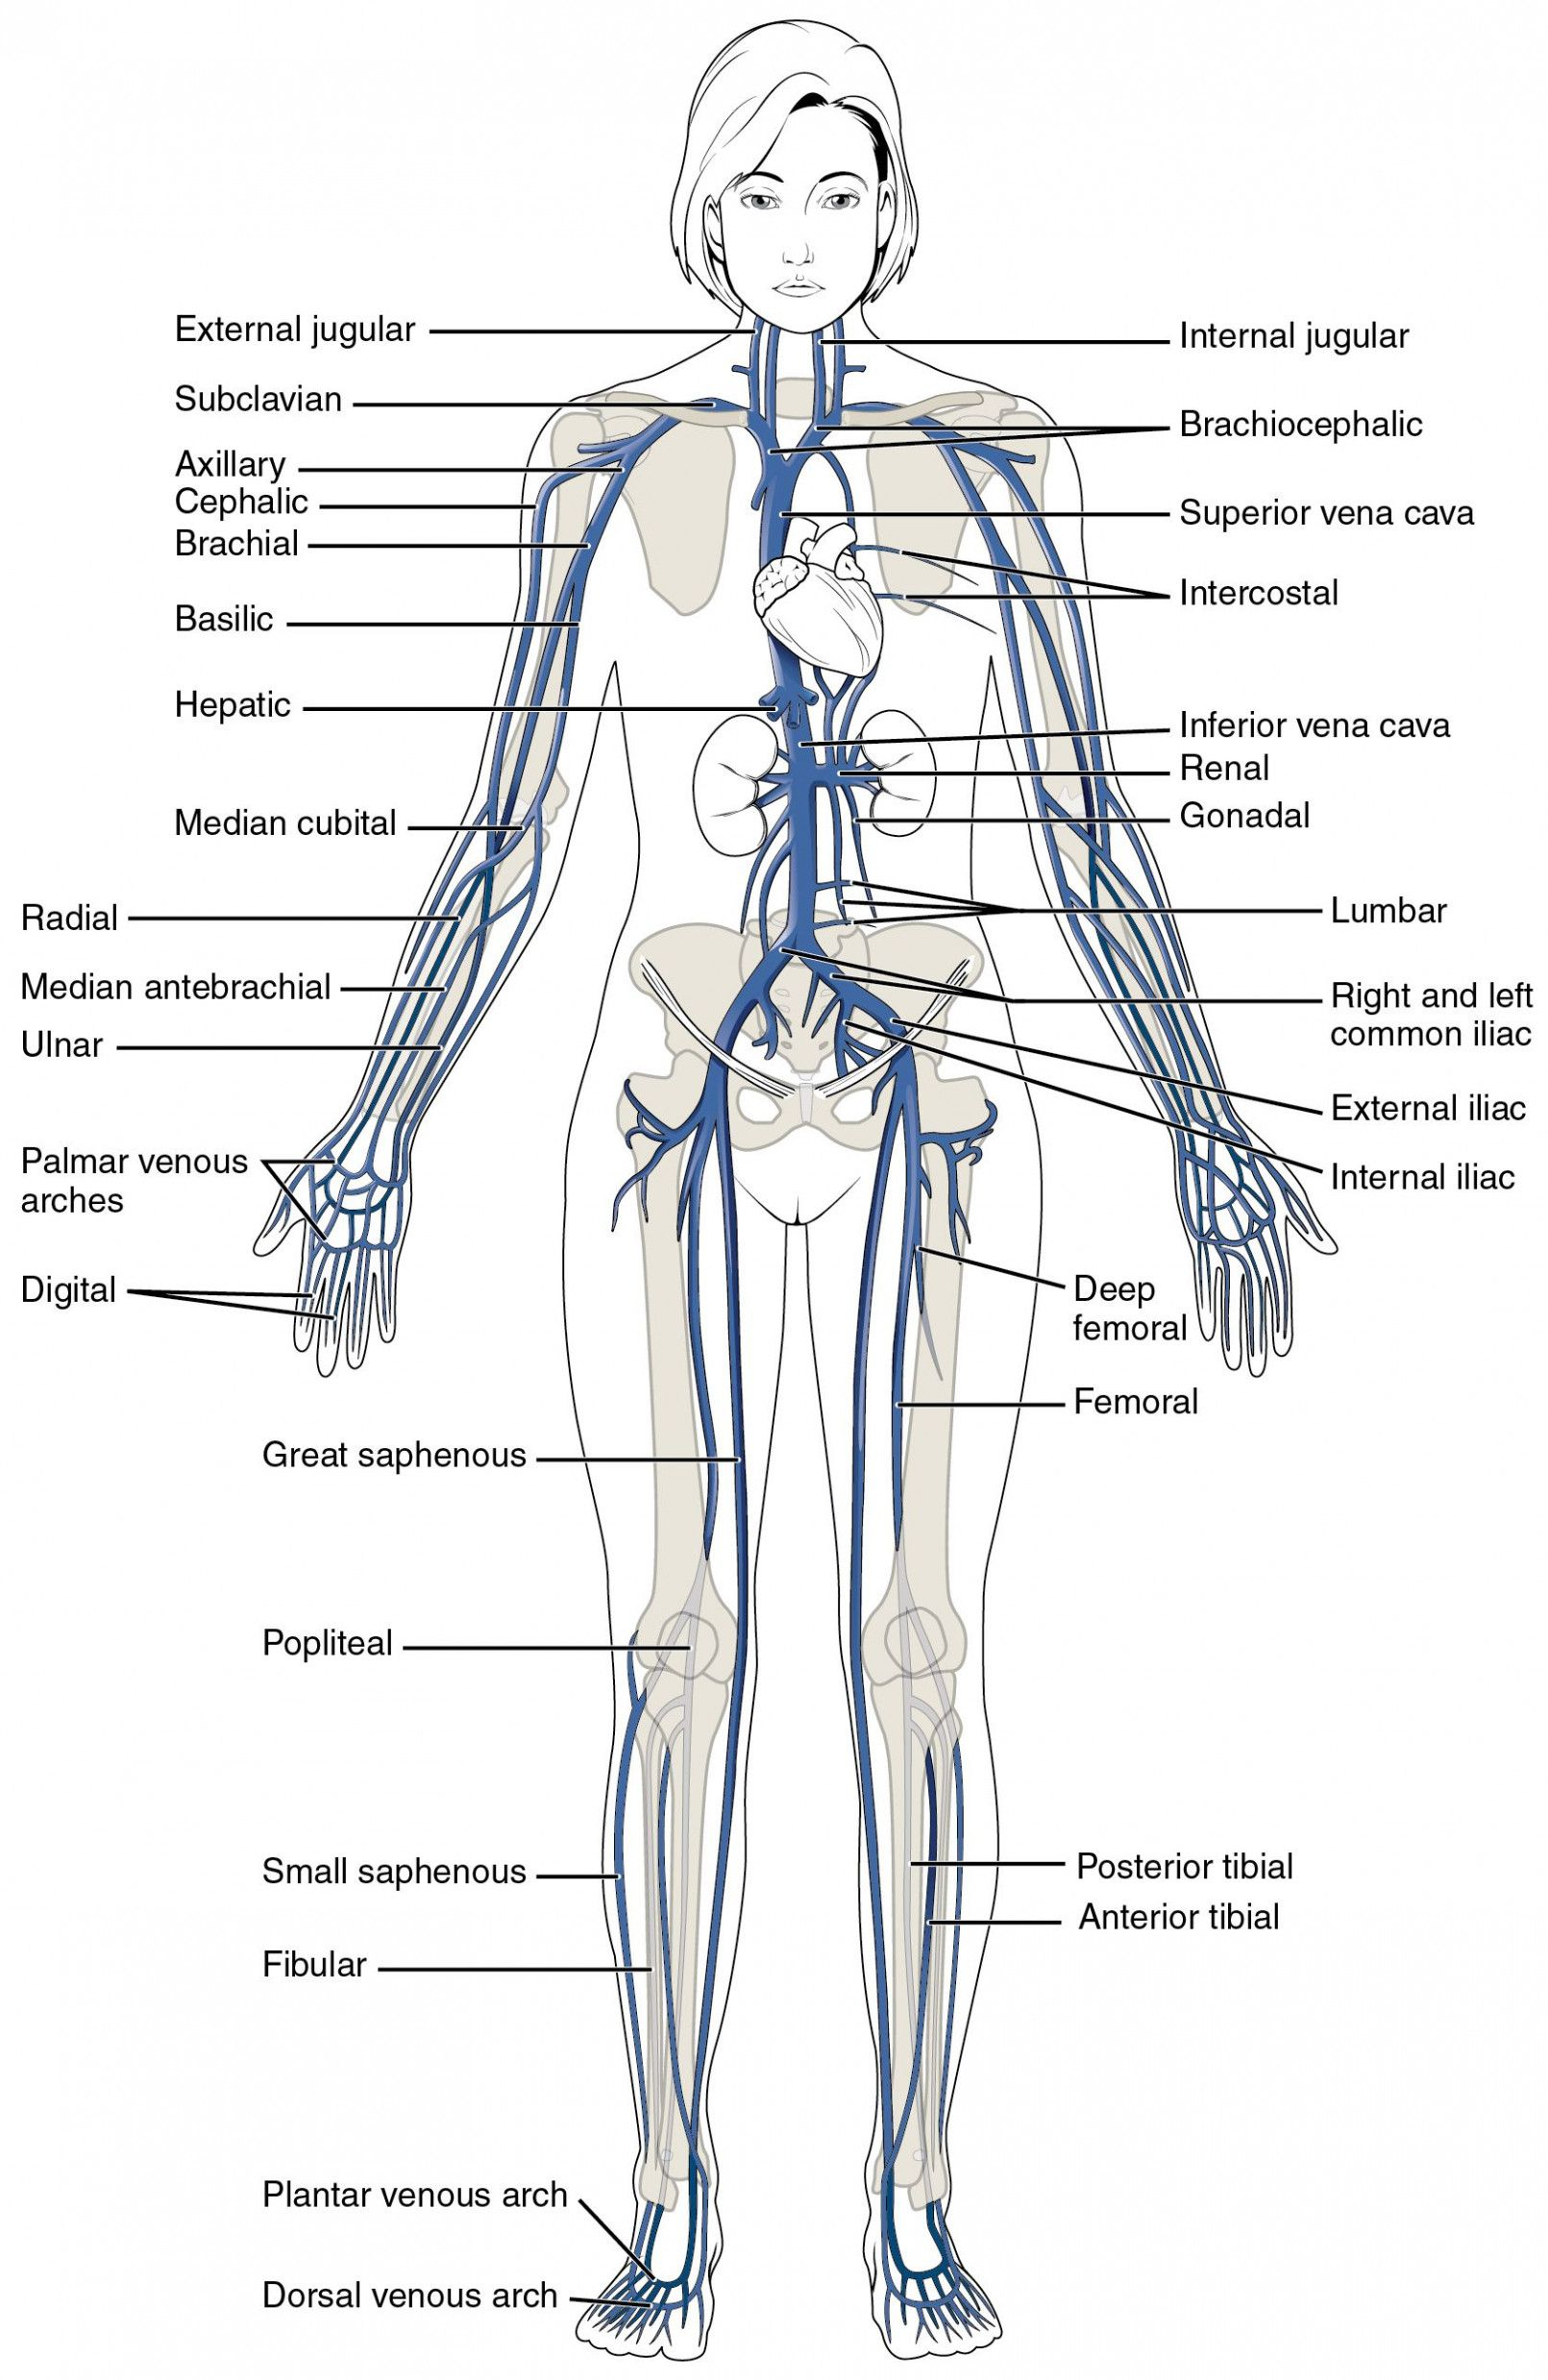 cat body diagram unlabeled schema wiring diagram online Cartoon Human Body Parts blank body diagram of veins wiring diagrams unlabeled body regions cat body diagram unlabeled